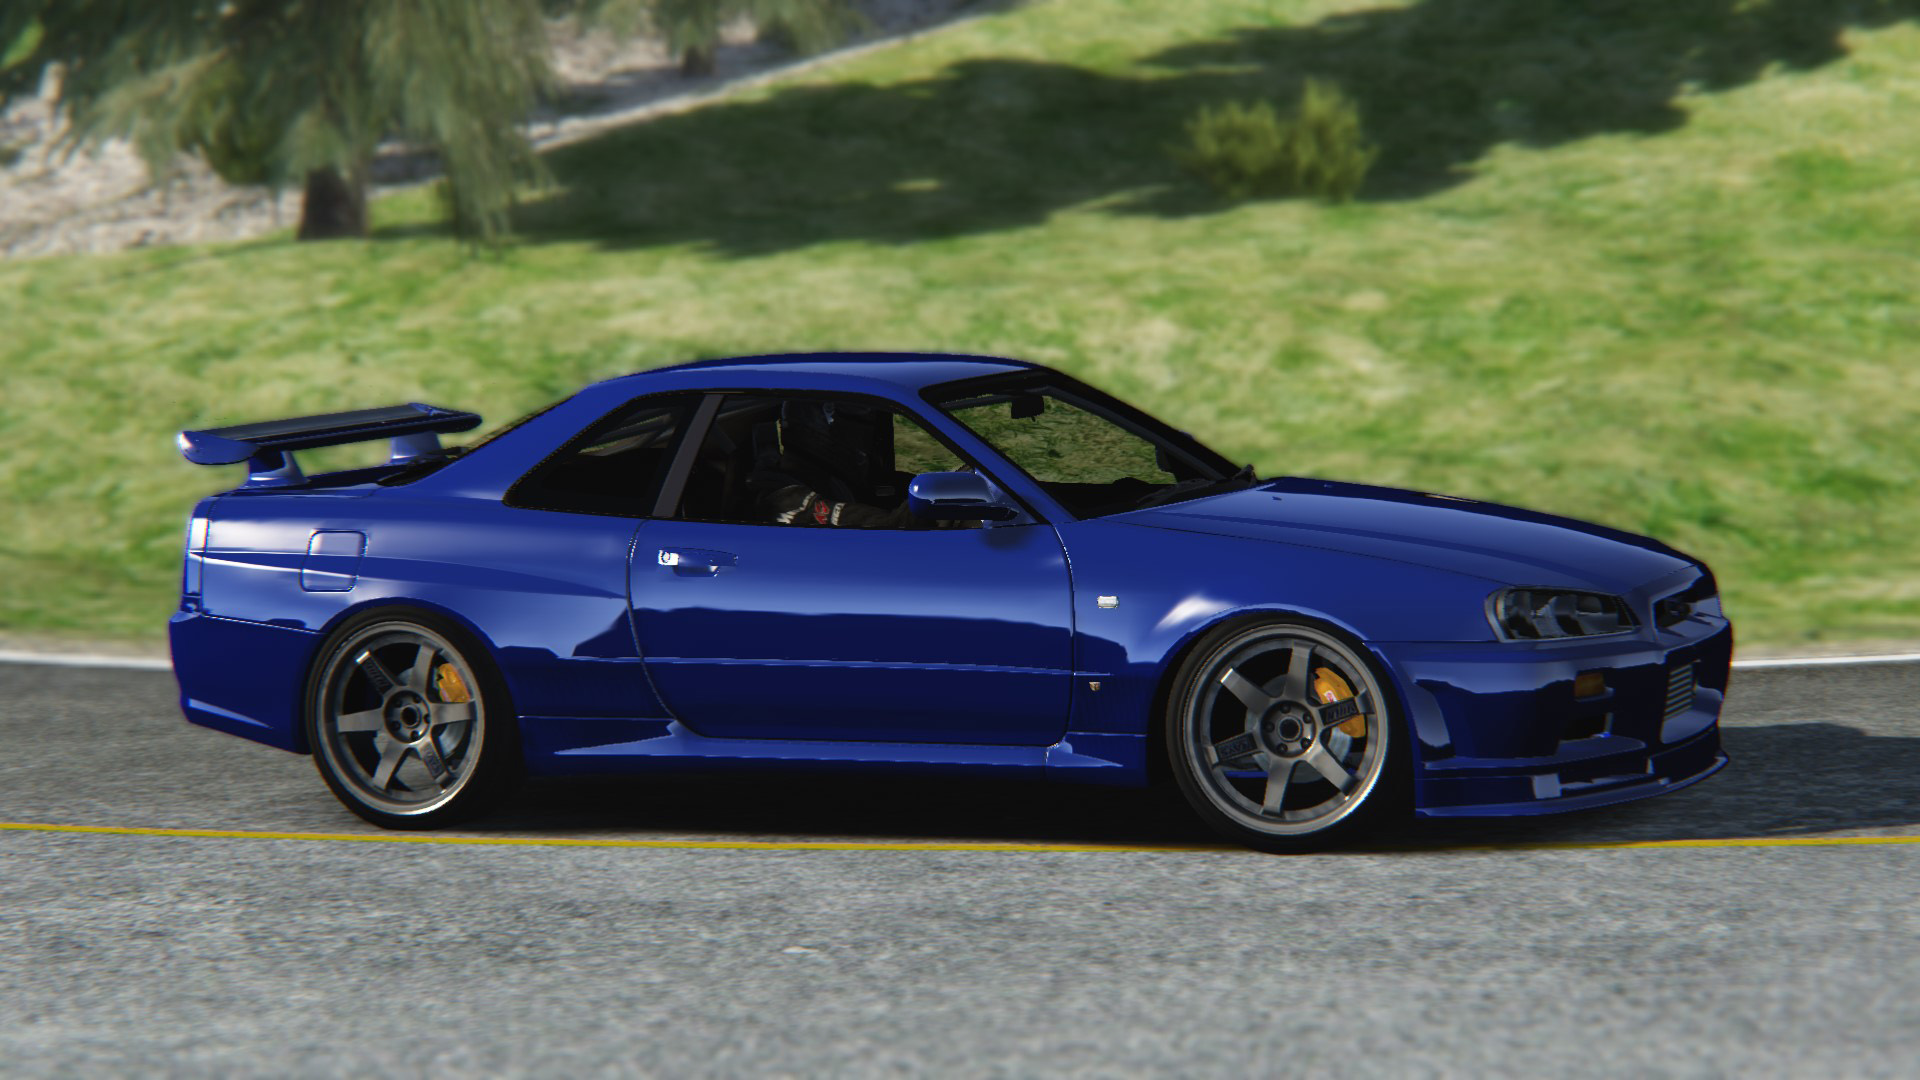 List Of Cars >> Nissan Skyline R34 Drift - Nissan - Car Detail - Assetto Corsa Database